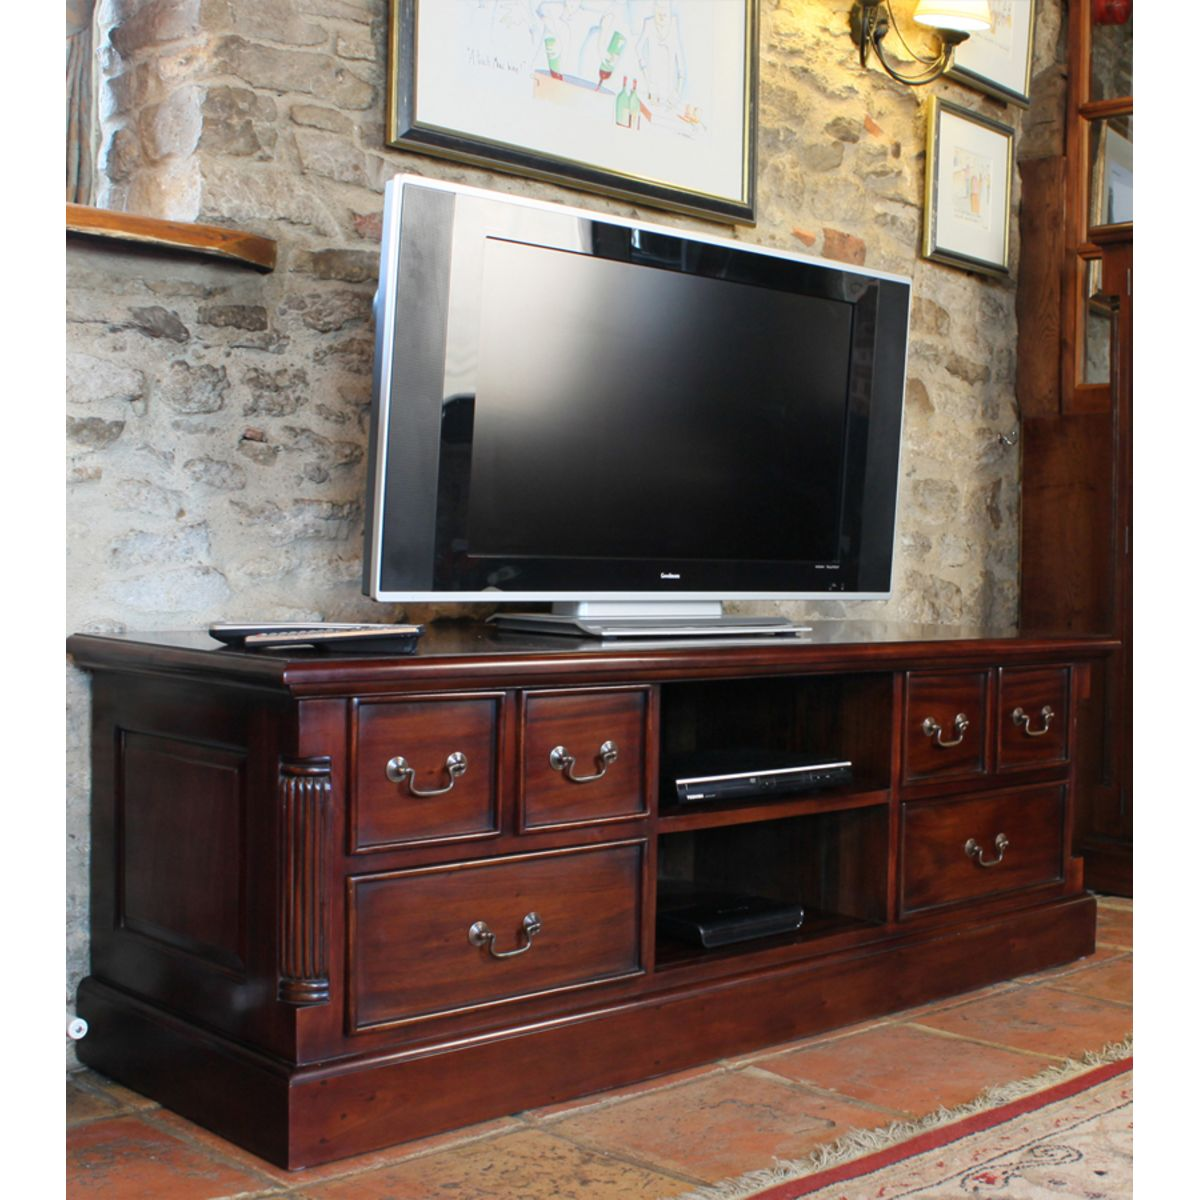 Mahogany Widescreen Television Cabinet Wooden Furniture